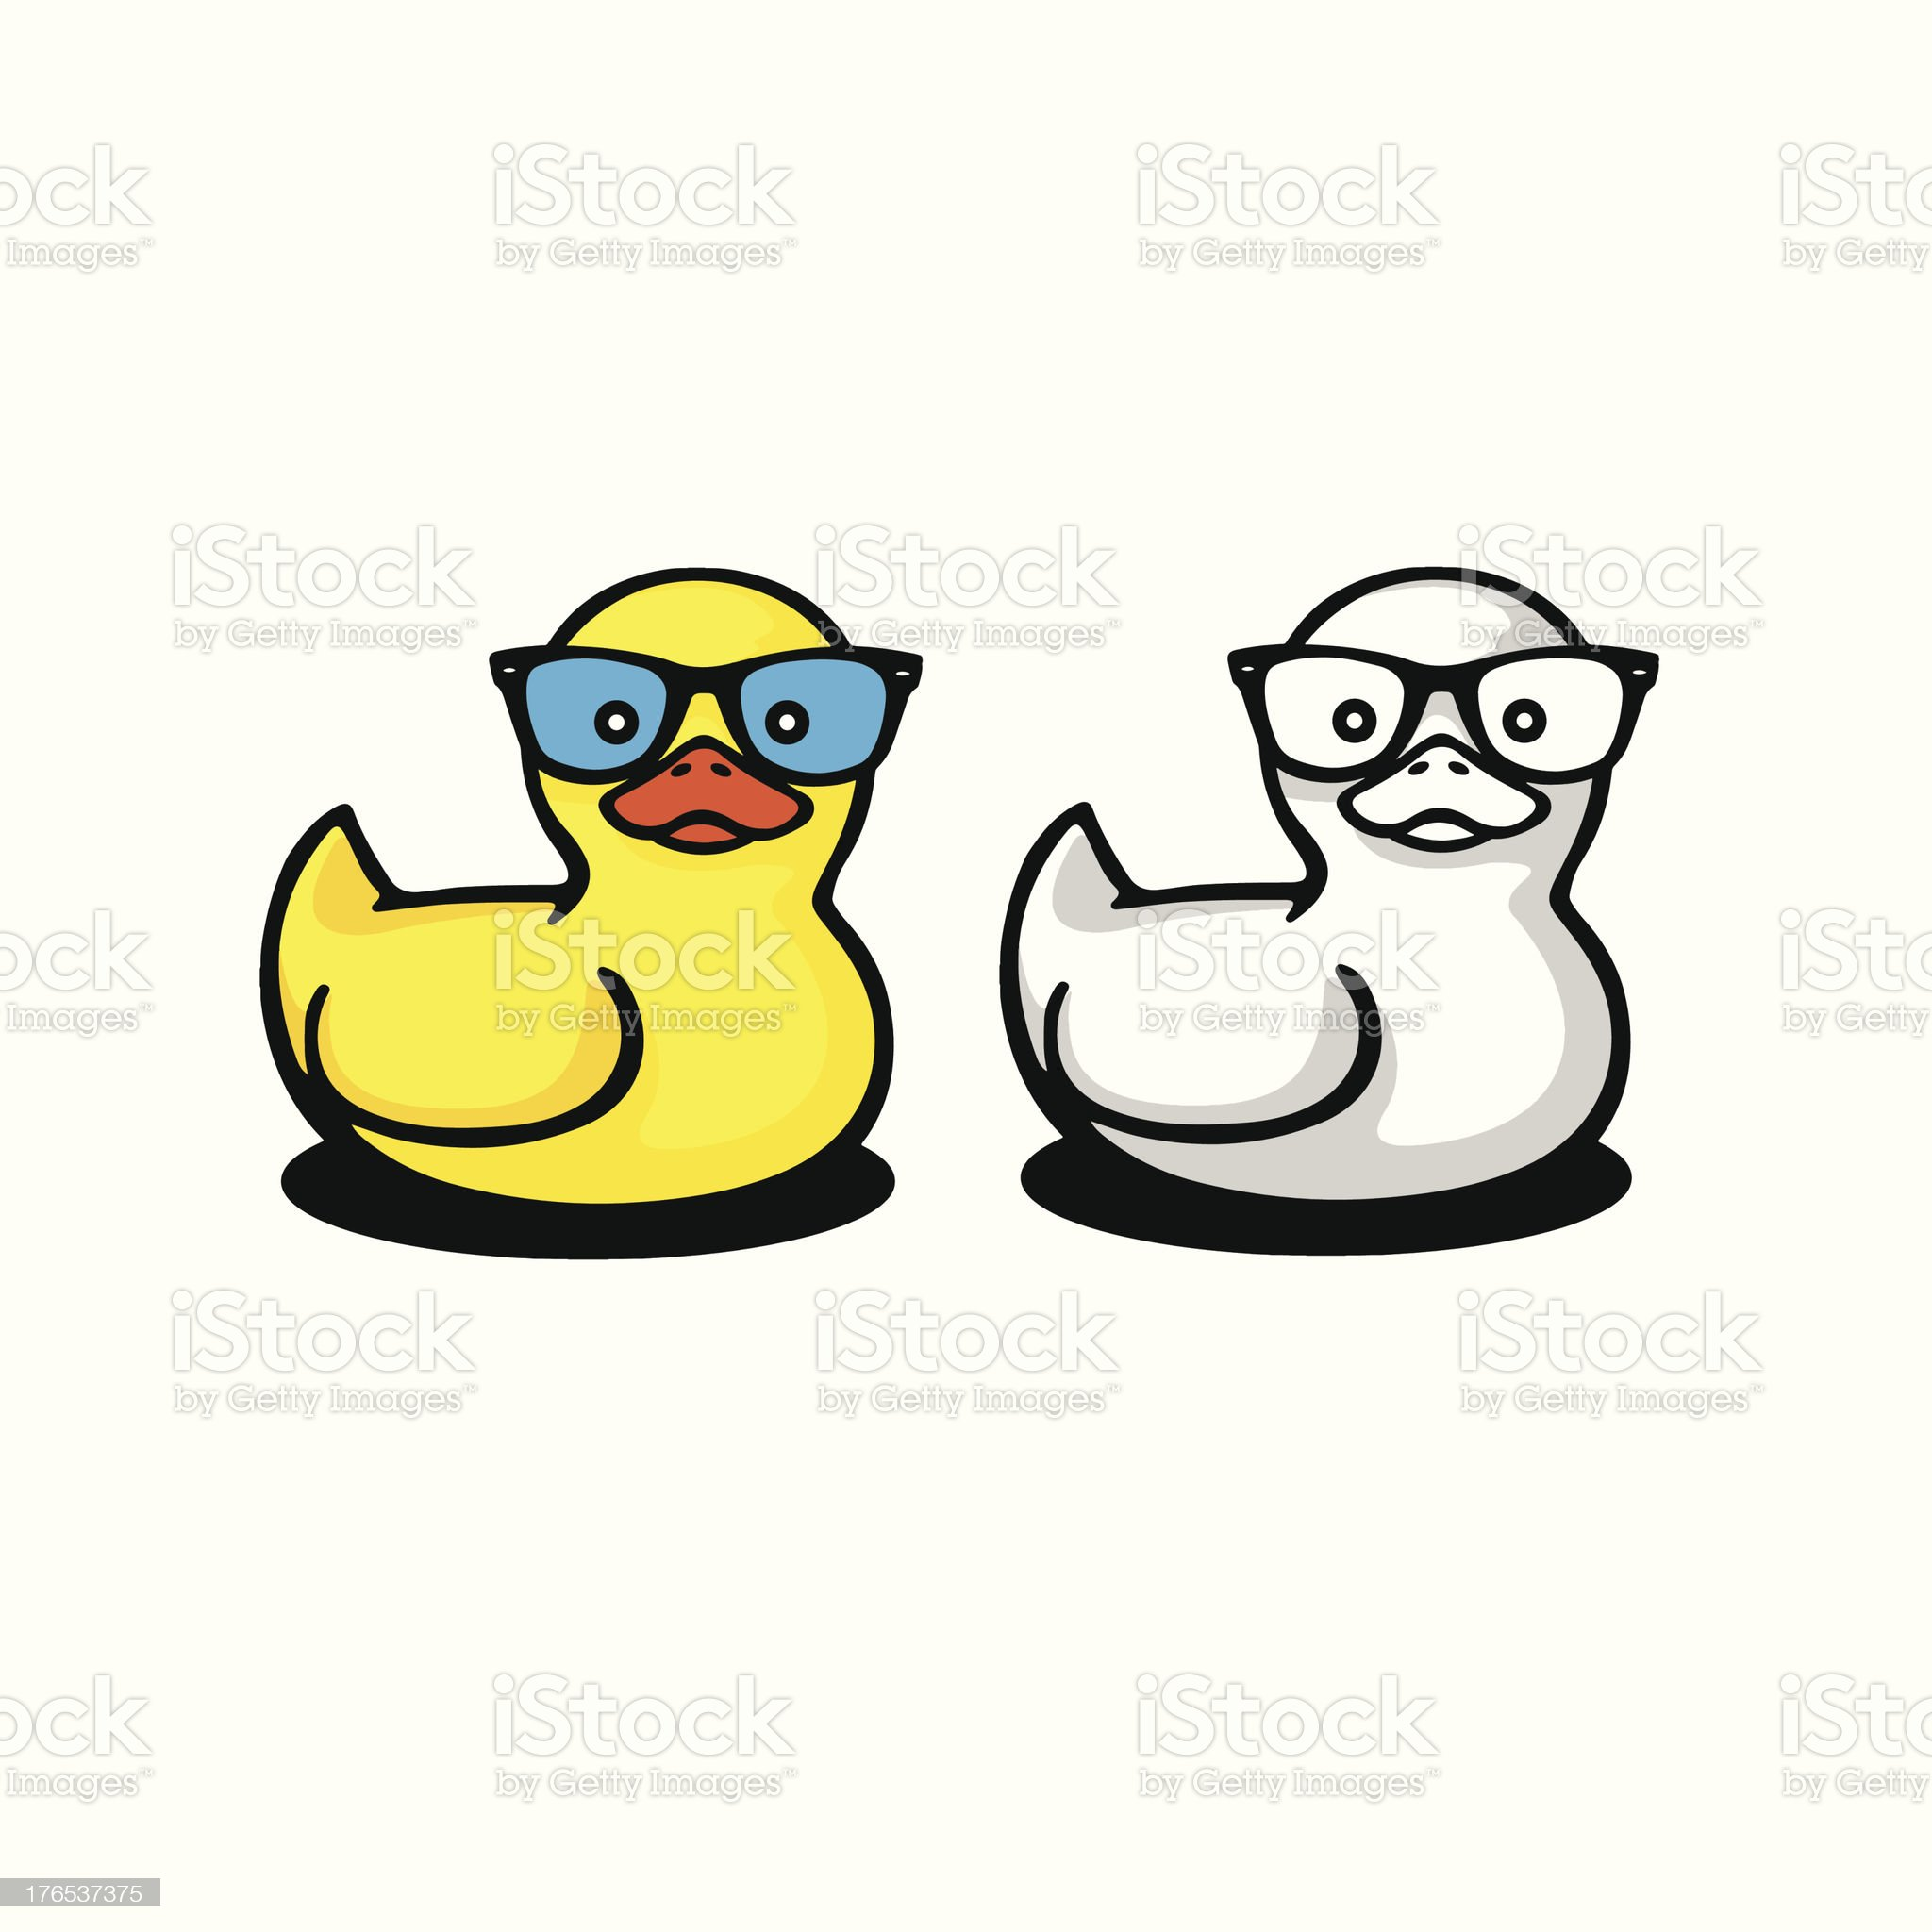 duckling in sunglasses royalty-free stock vector art